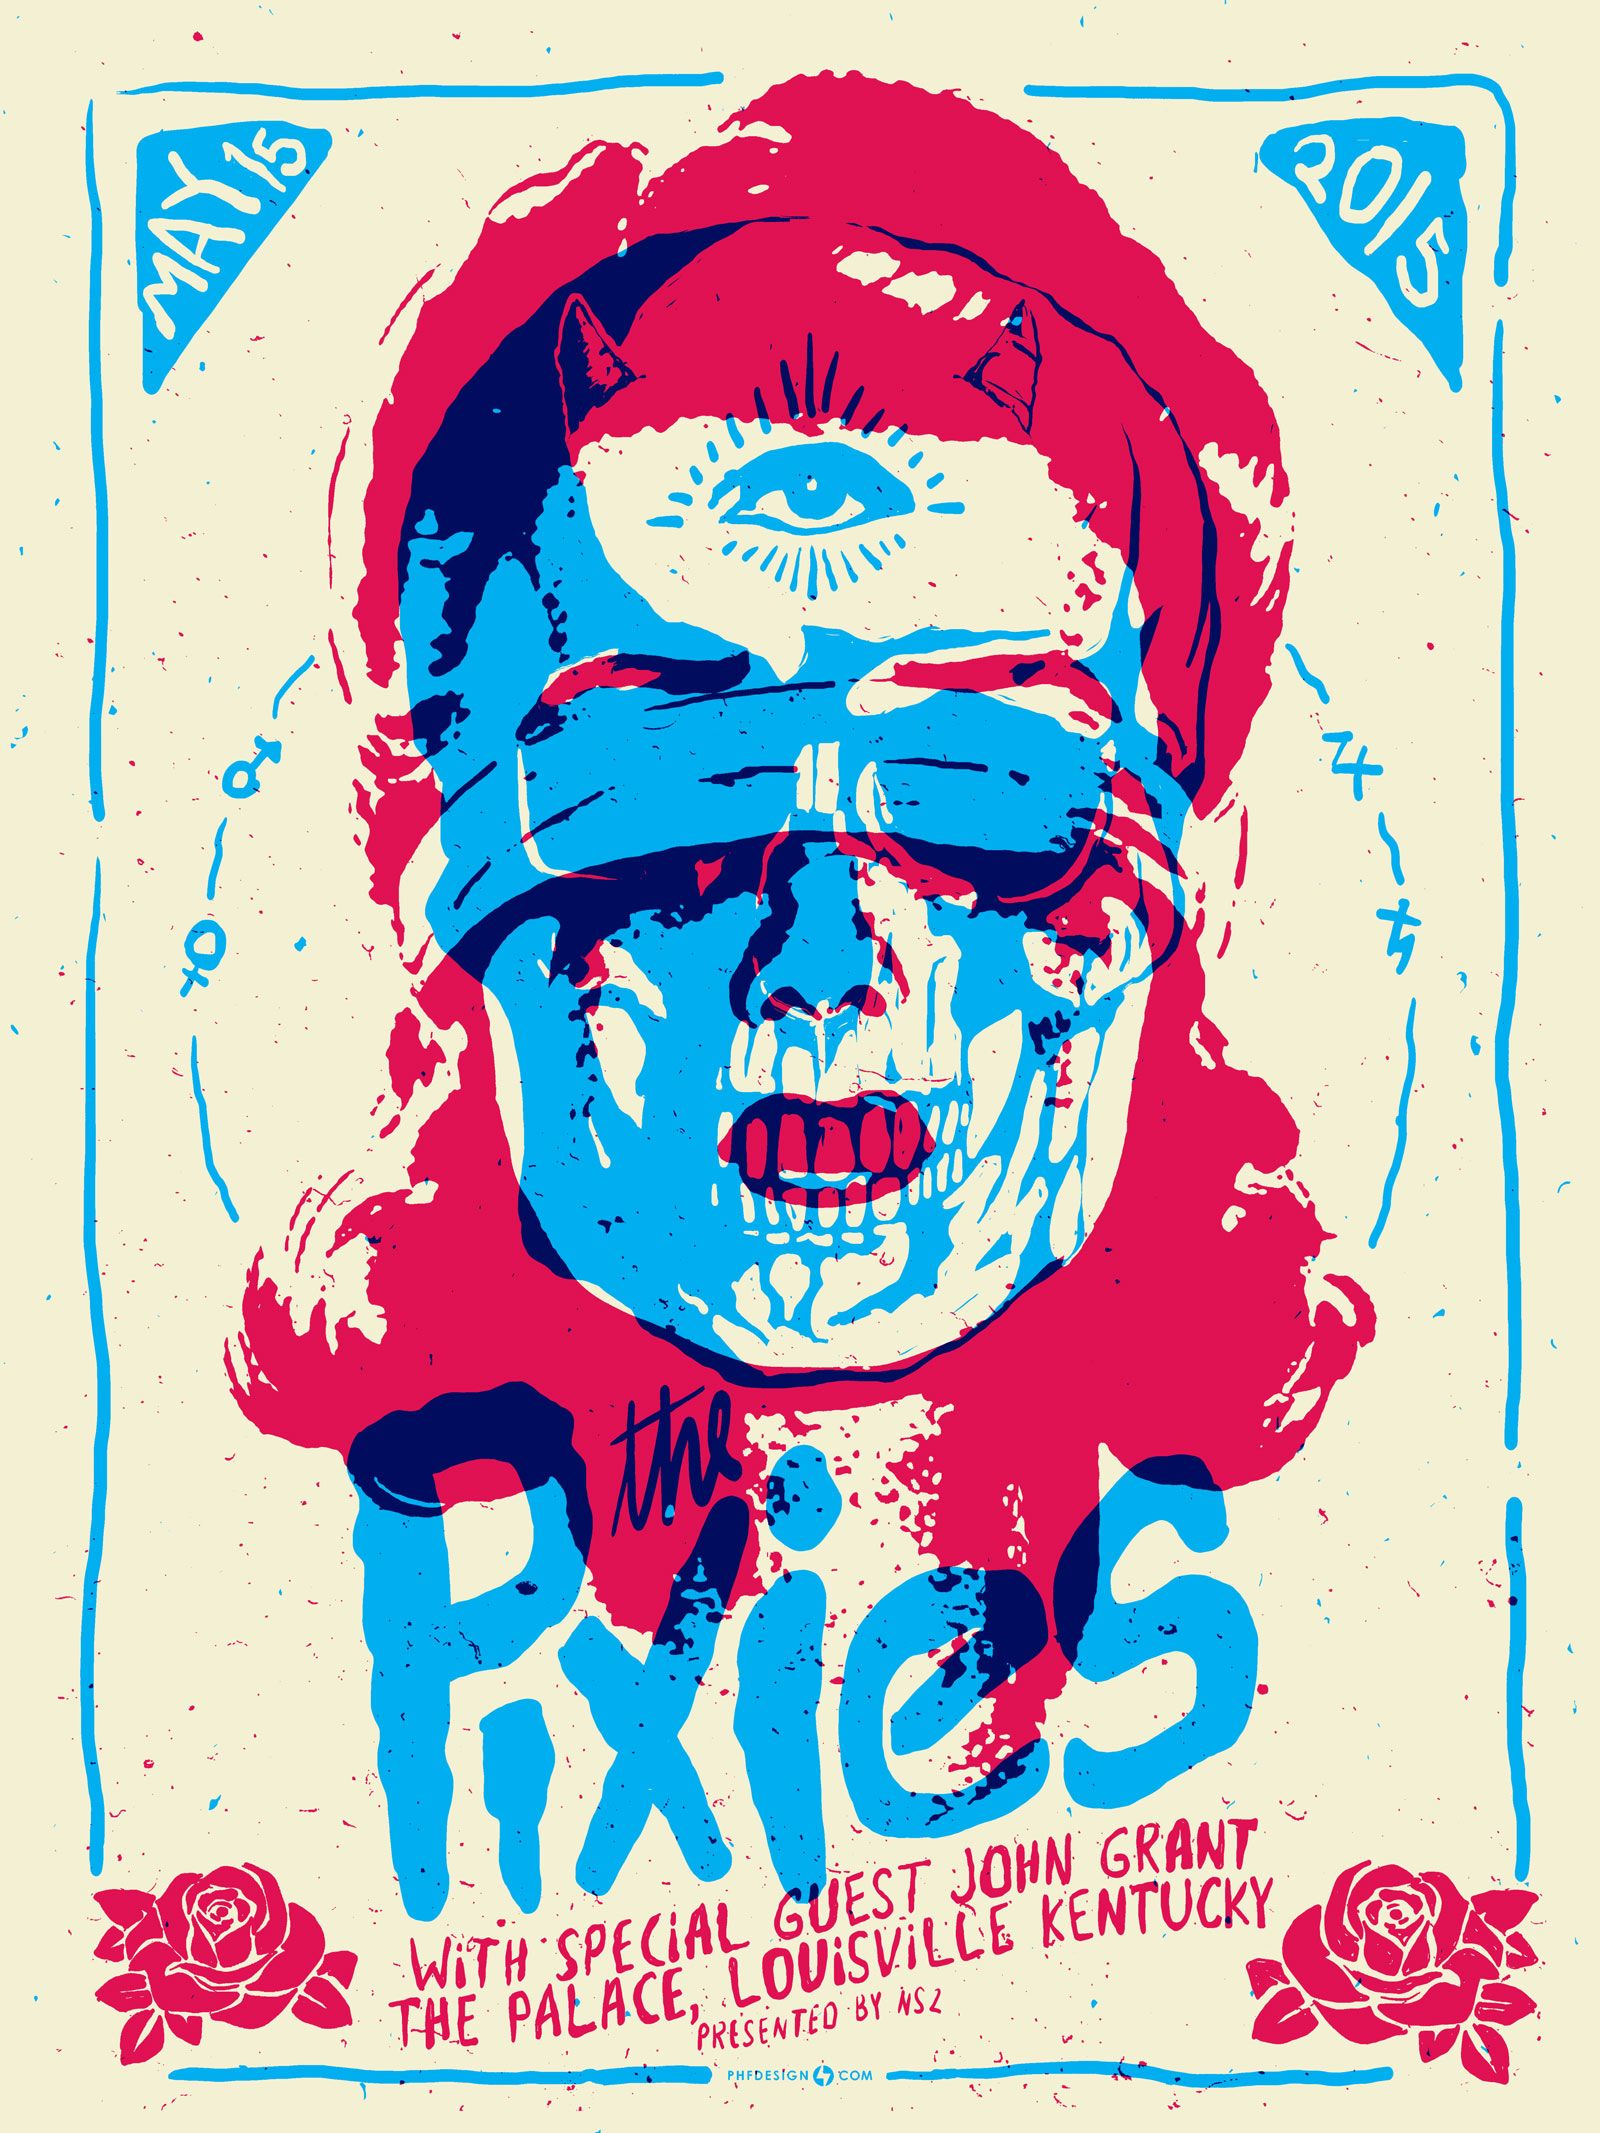 3 color poster designs - This 3 Color Poster Was Screen Printed On Heavy Cream Paper With Acrylic Inks For The